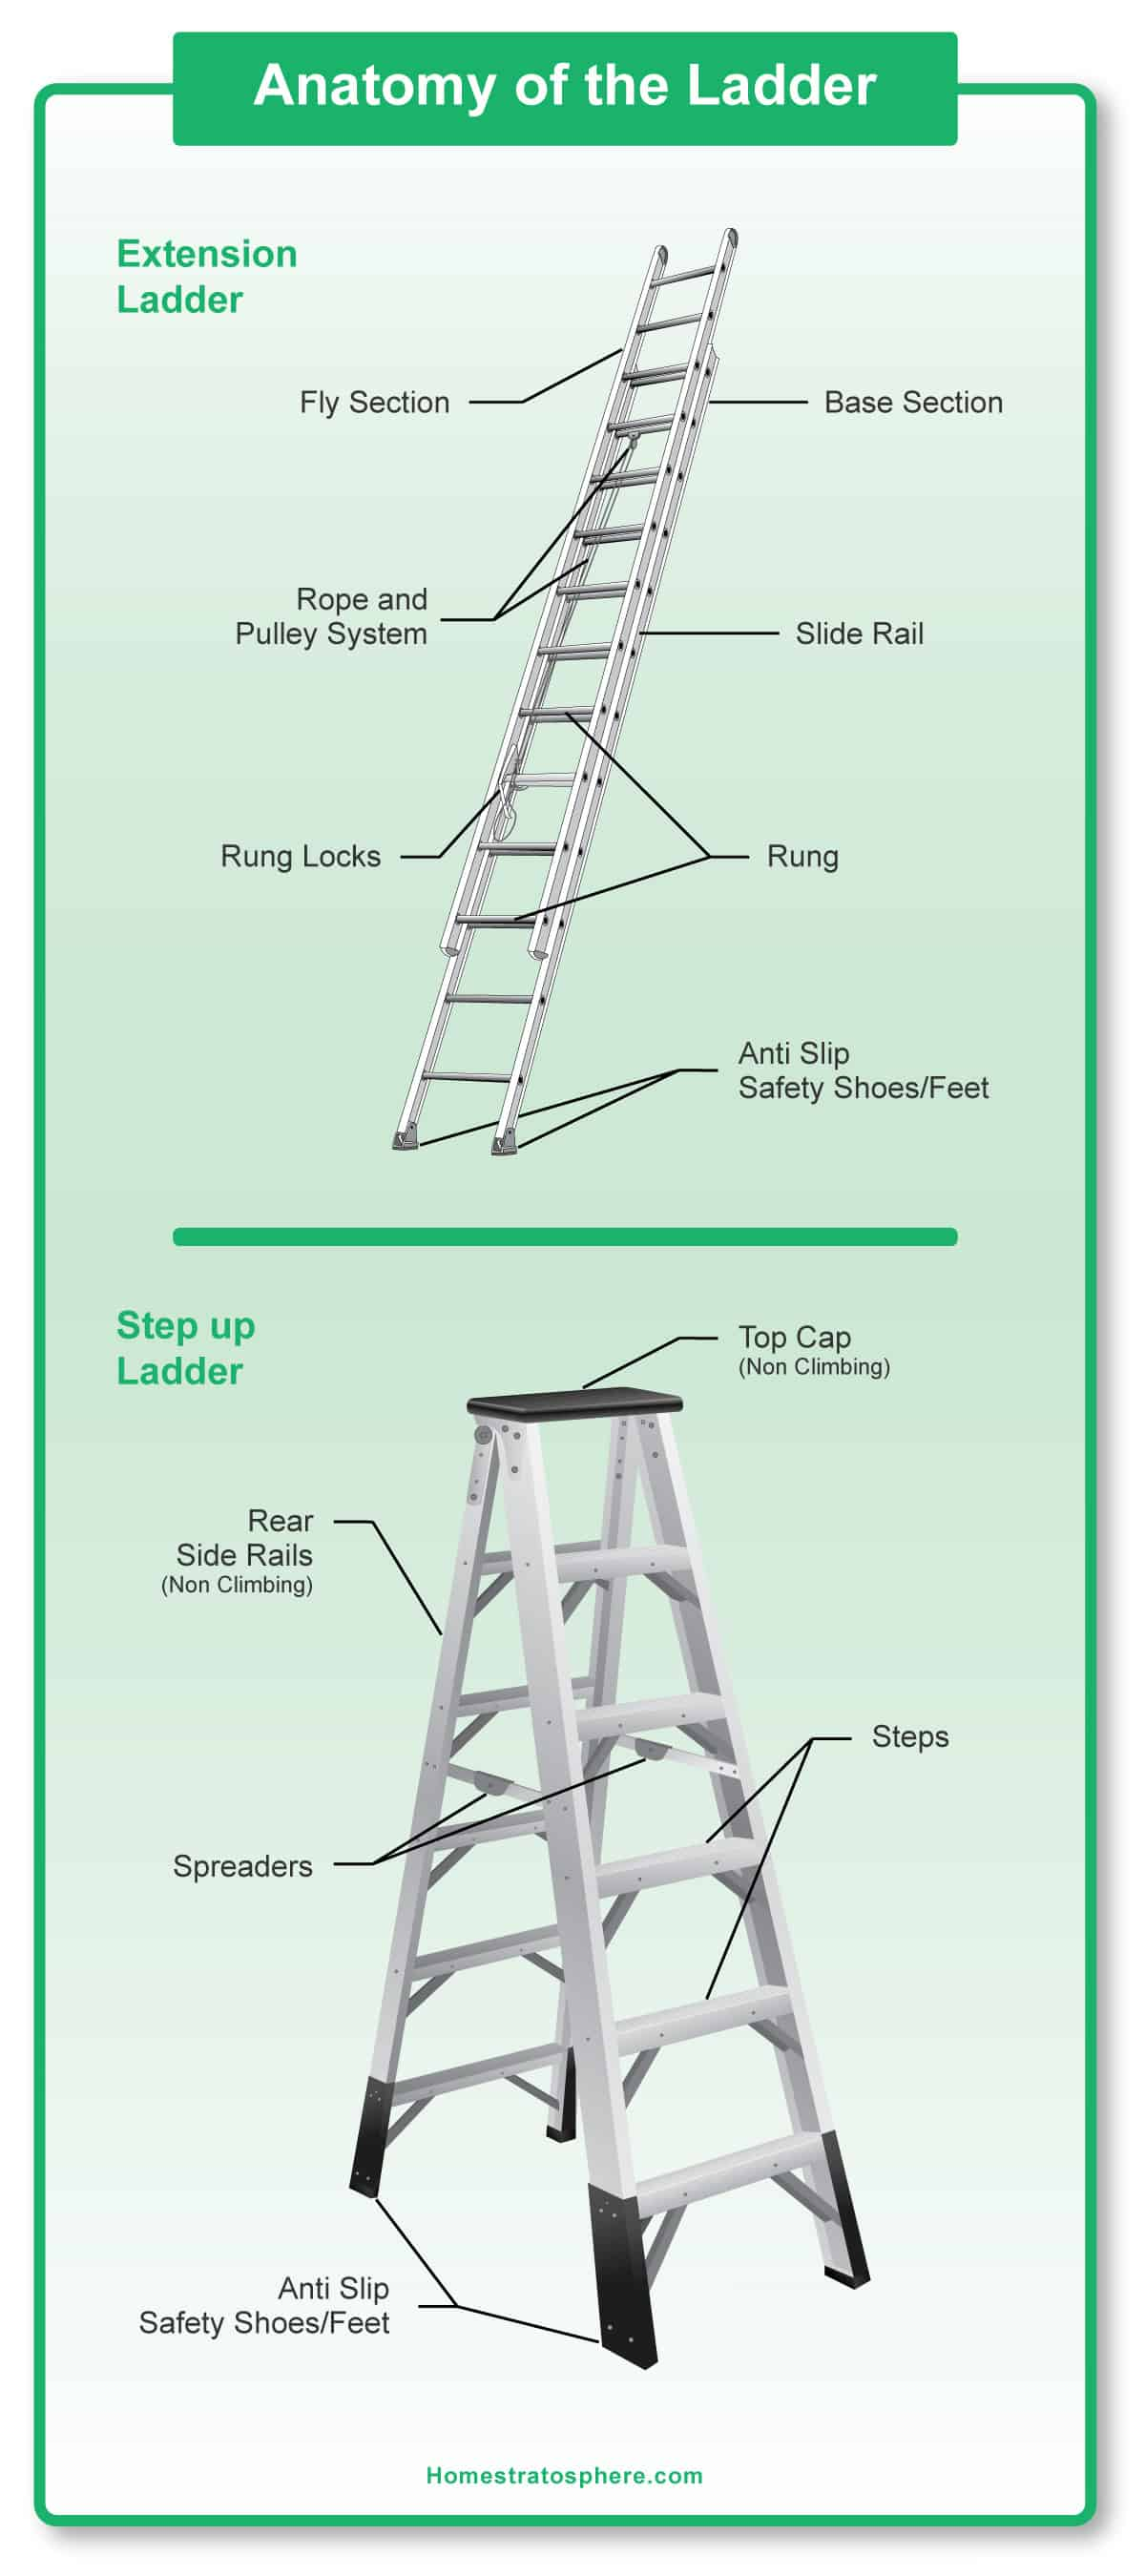 extension ladder parts diagram 7 way rv trailer wiring 39 ingenious diagrams for your home and garden projects